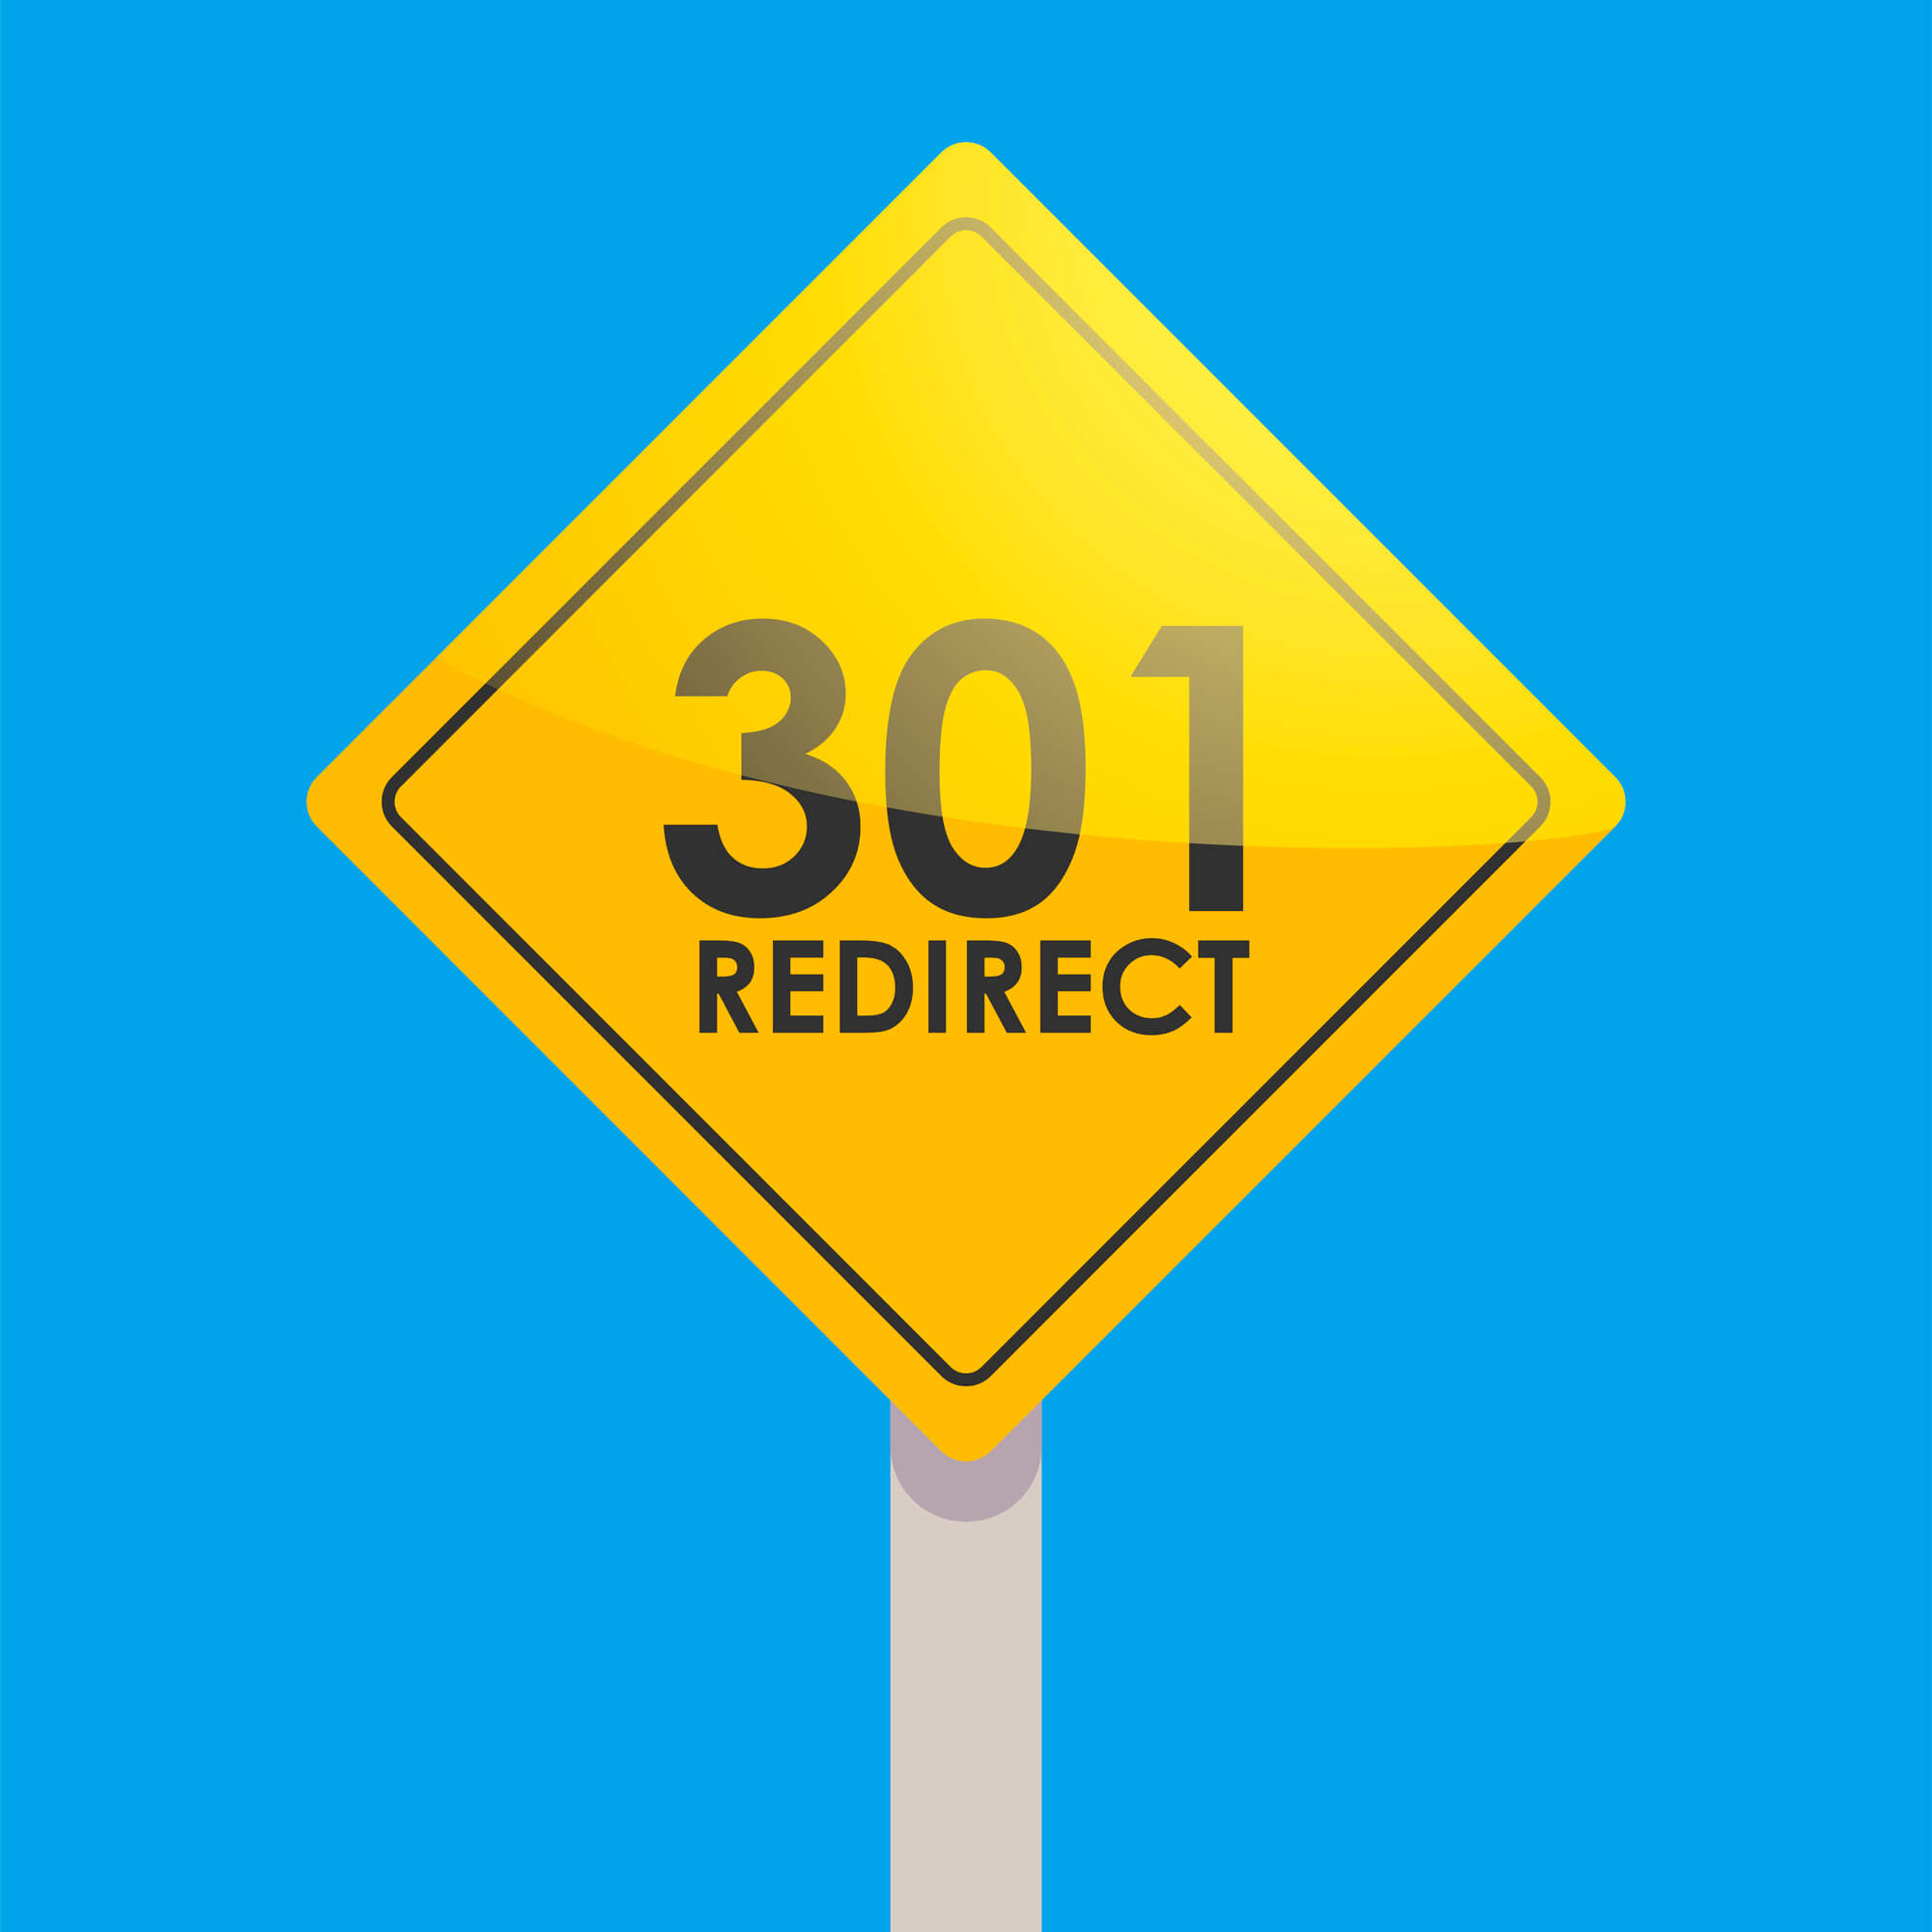 What are website redirects?